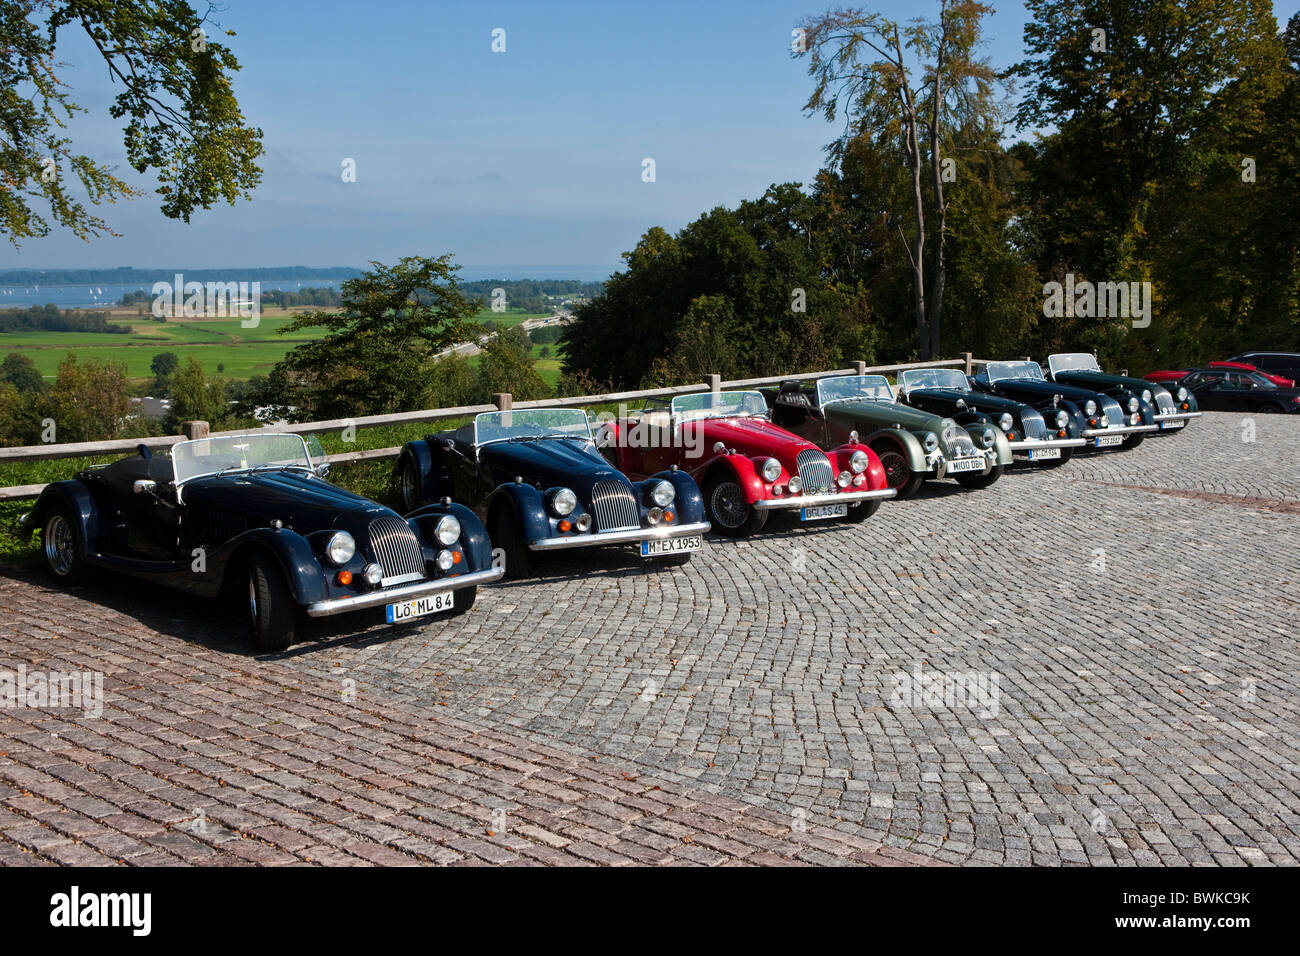 Several Morgan Plus 8 vintage sports cars - Stock Image